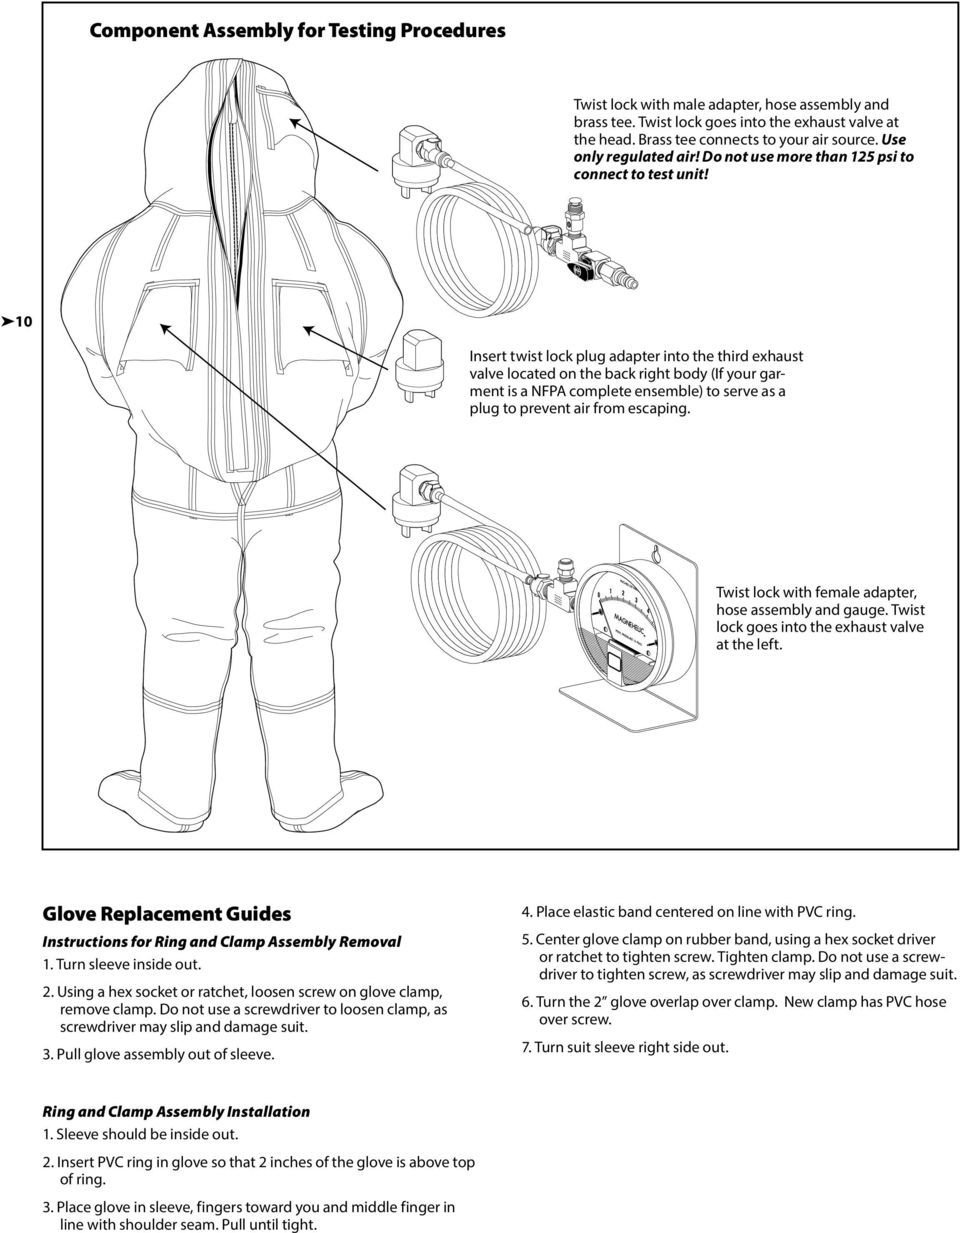 10 Insert twist lock plug adapter into the third exhaust valve located on the back right body (If your garment is a NFPA complete ensemble) to serve as a plug to prevent air from escaping.